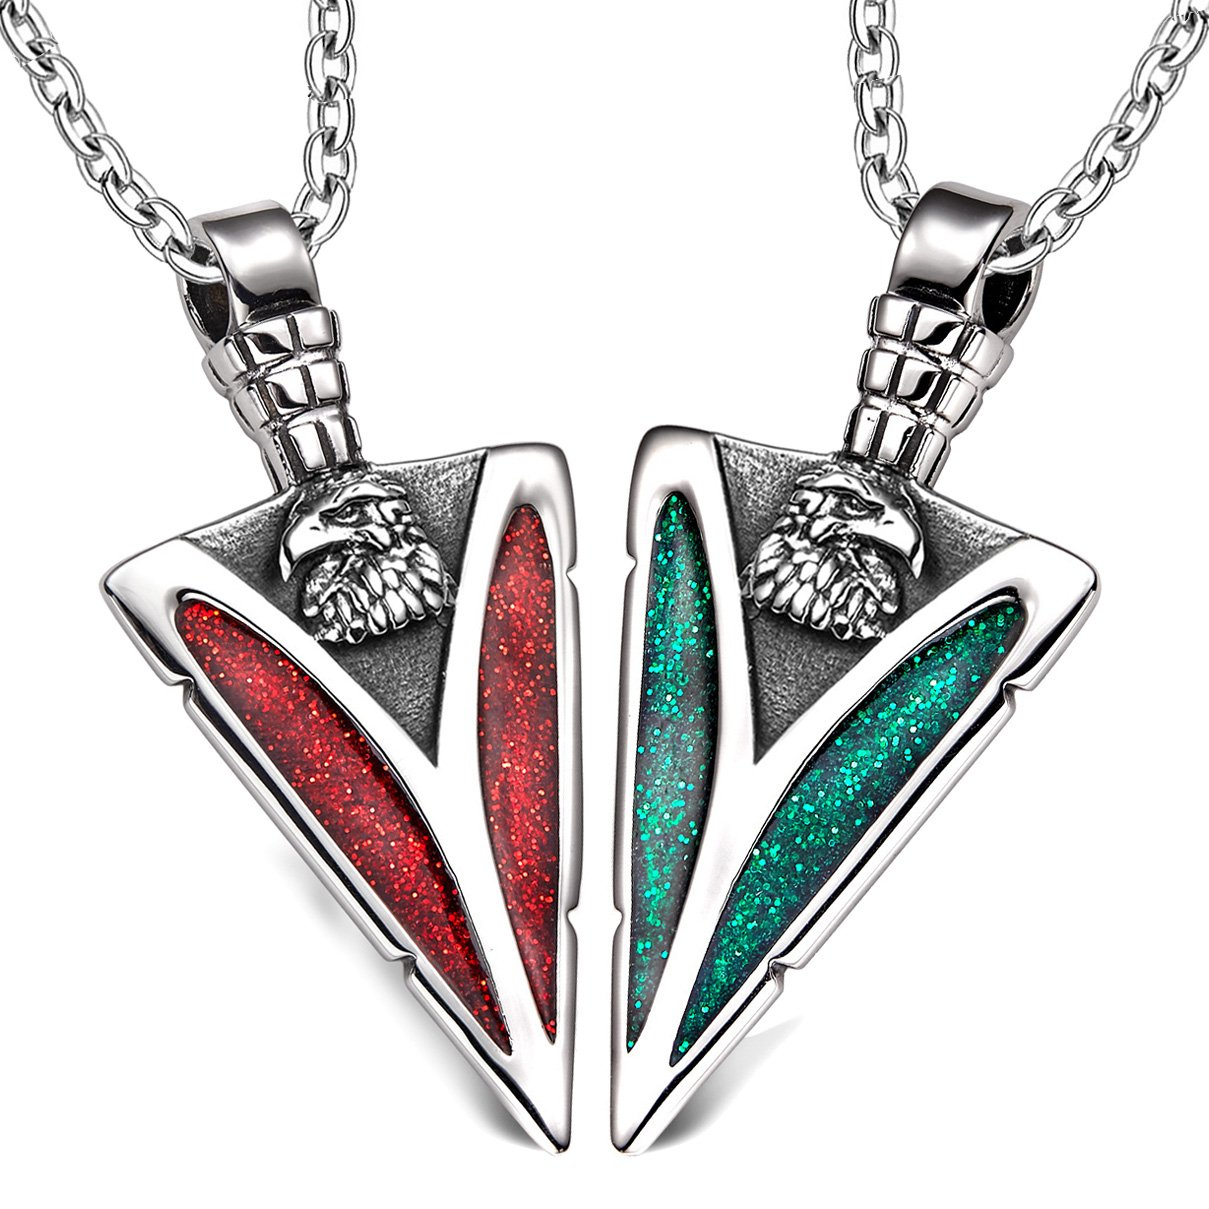 Arrowhead Wild American Eagle Head Love Couples BFF Set Protection Amulets Sparkling Red Green Necklaces